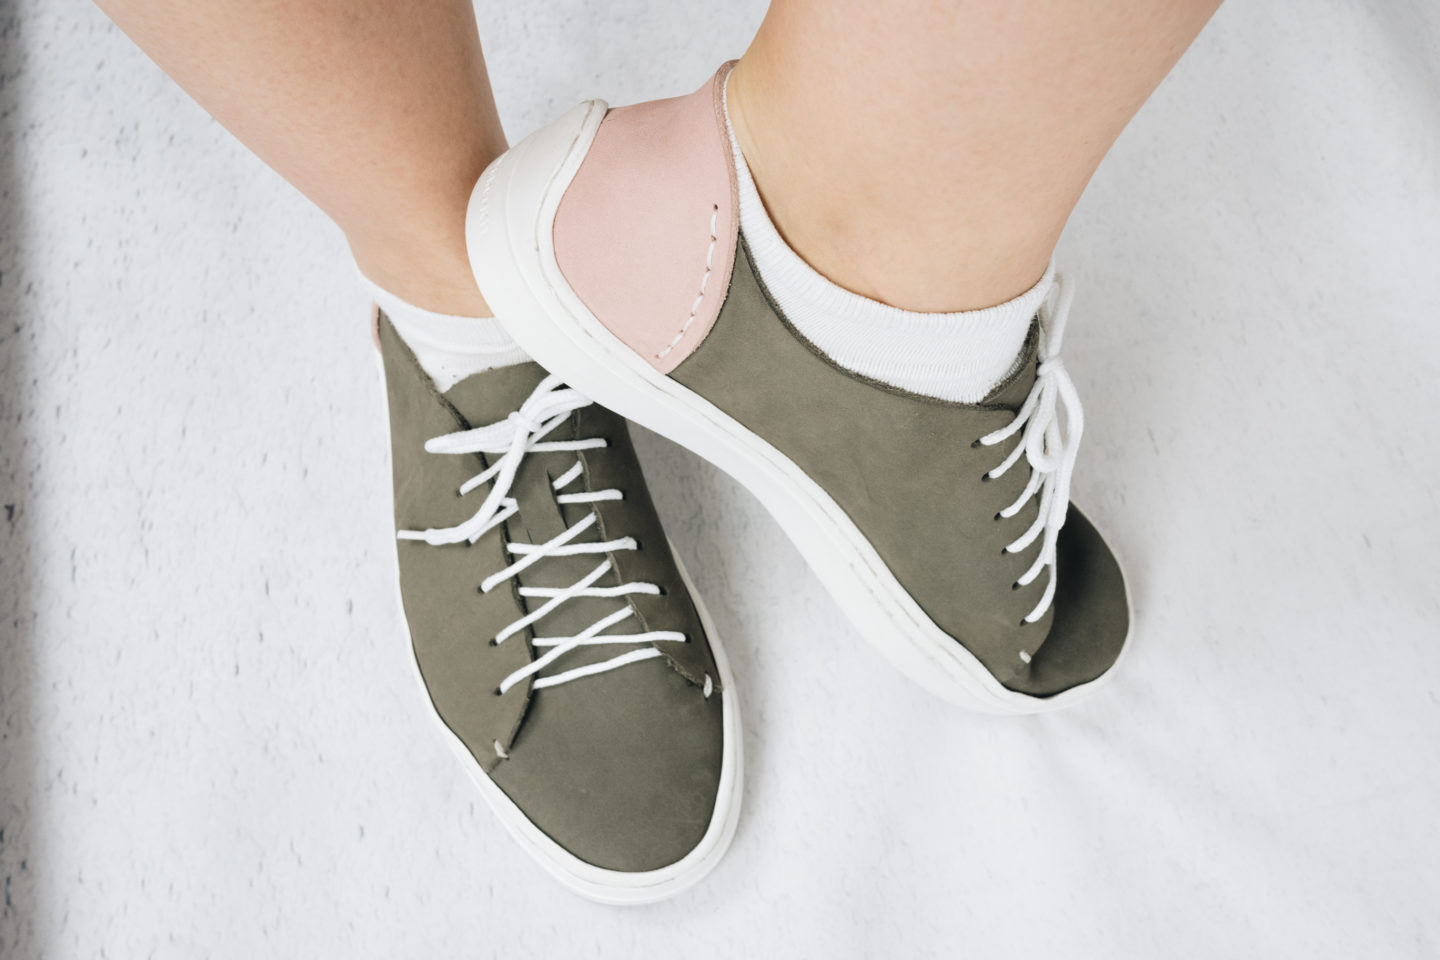 DIY Leather Trainers in grey and pink nubuck, using the Sneaker Kit new sole. Handmade | Sewing | Crafting